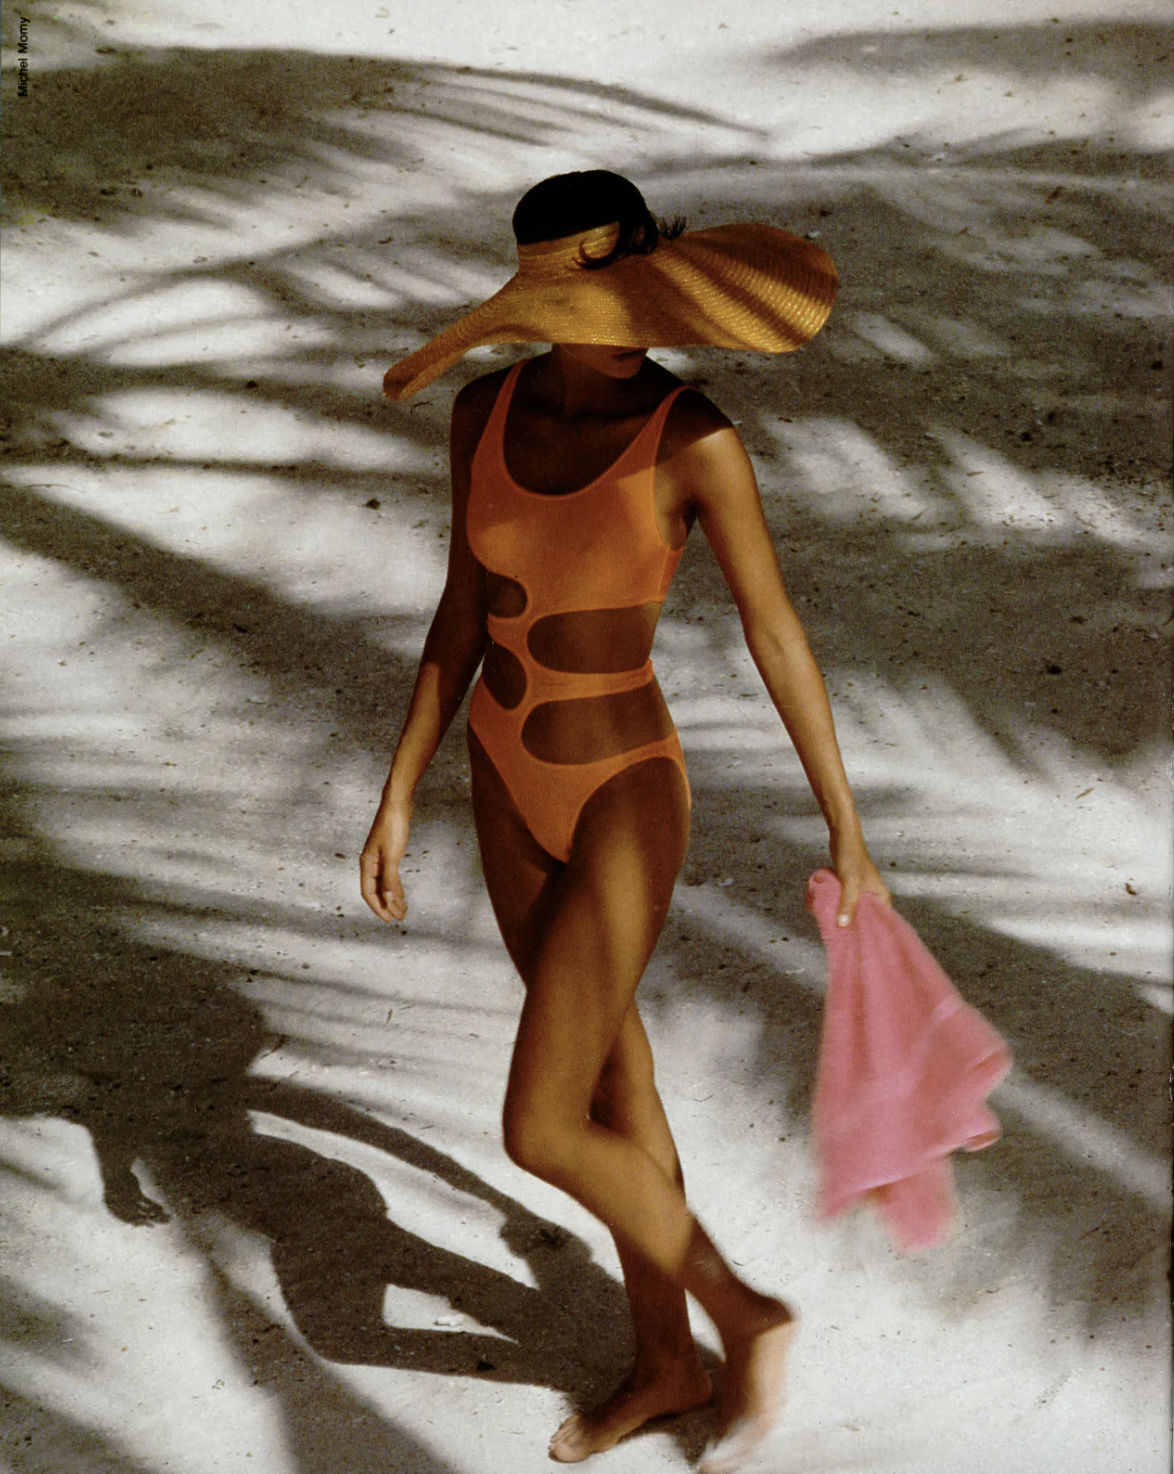 Get in the Summer Mood with Resort Fashion Throughout the Decades - Archival Fashion